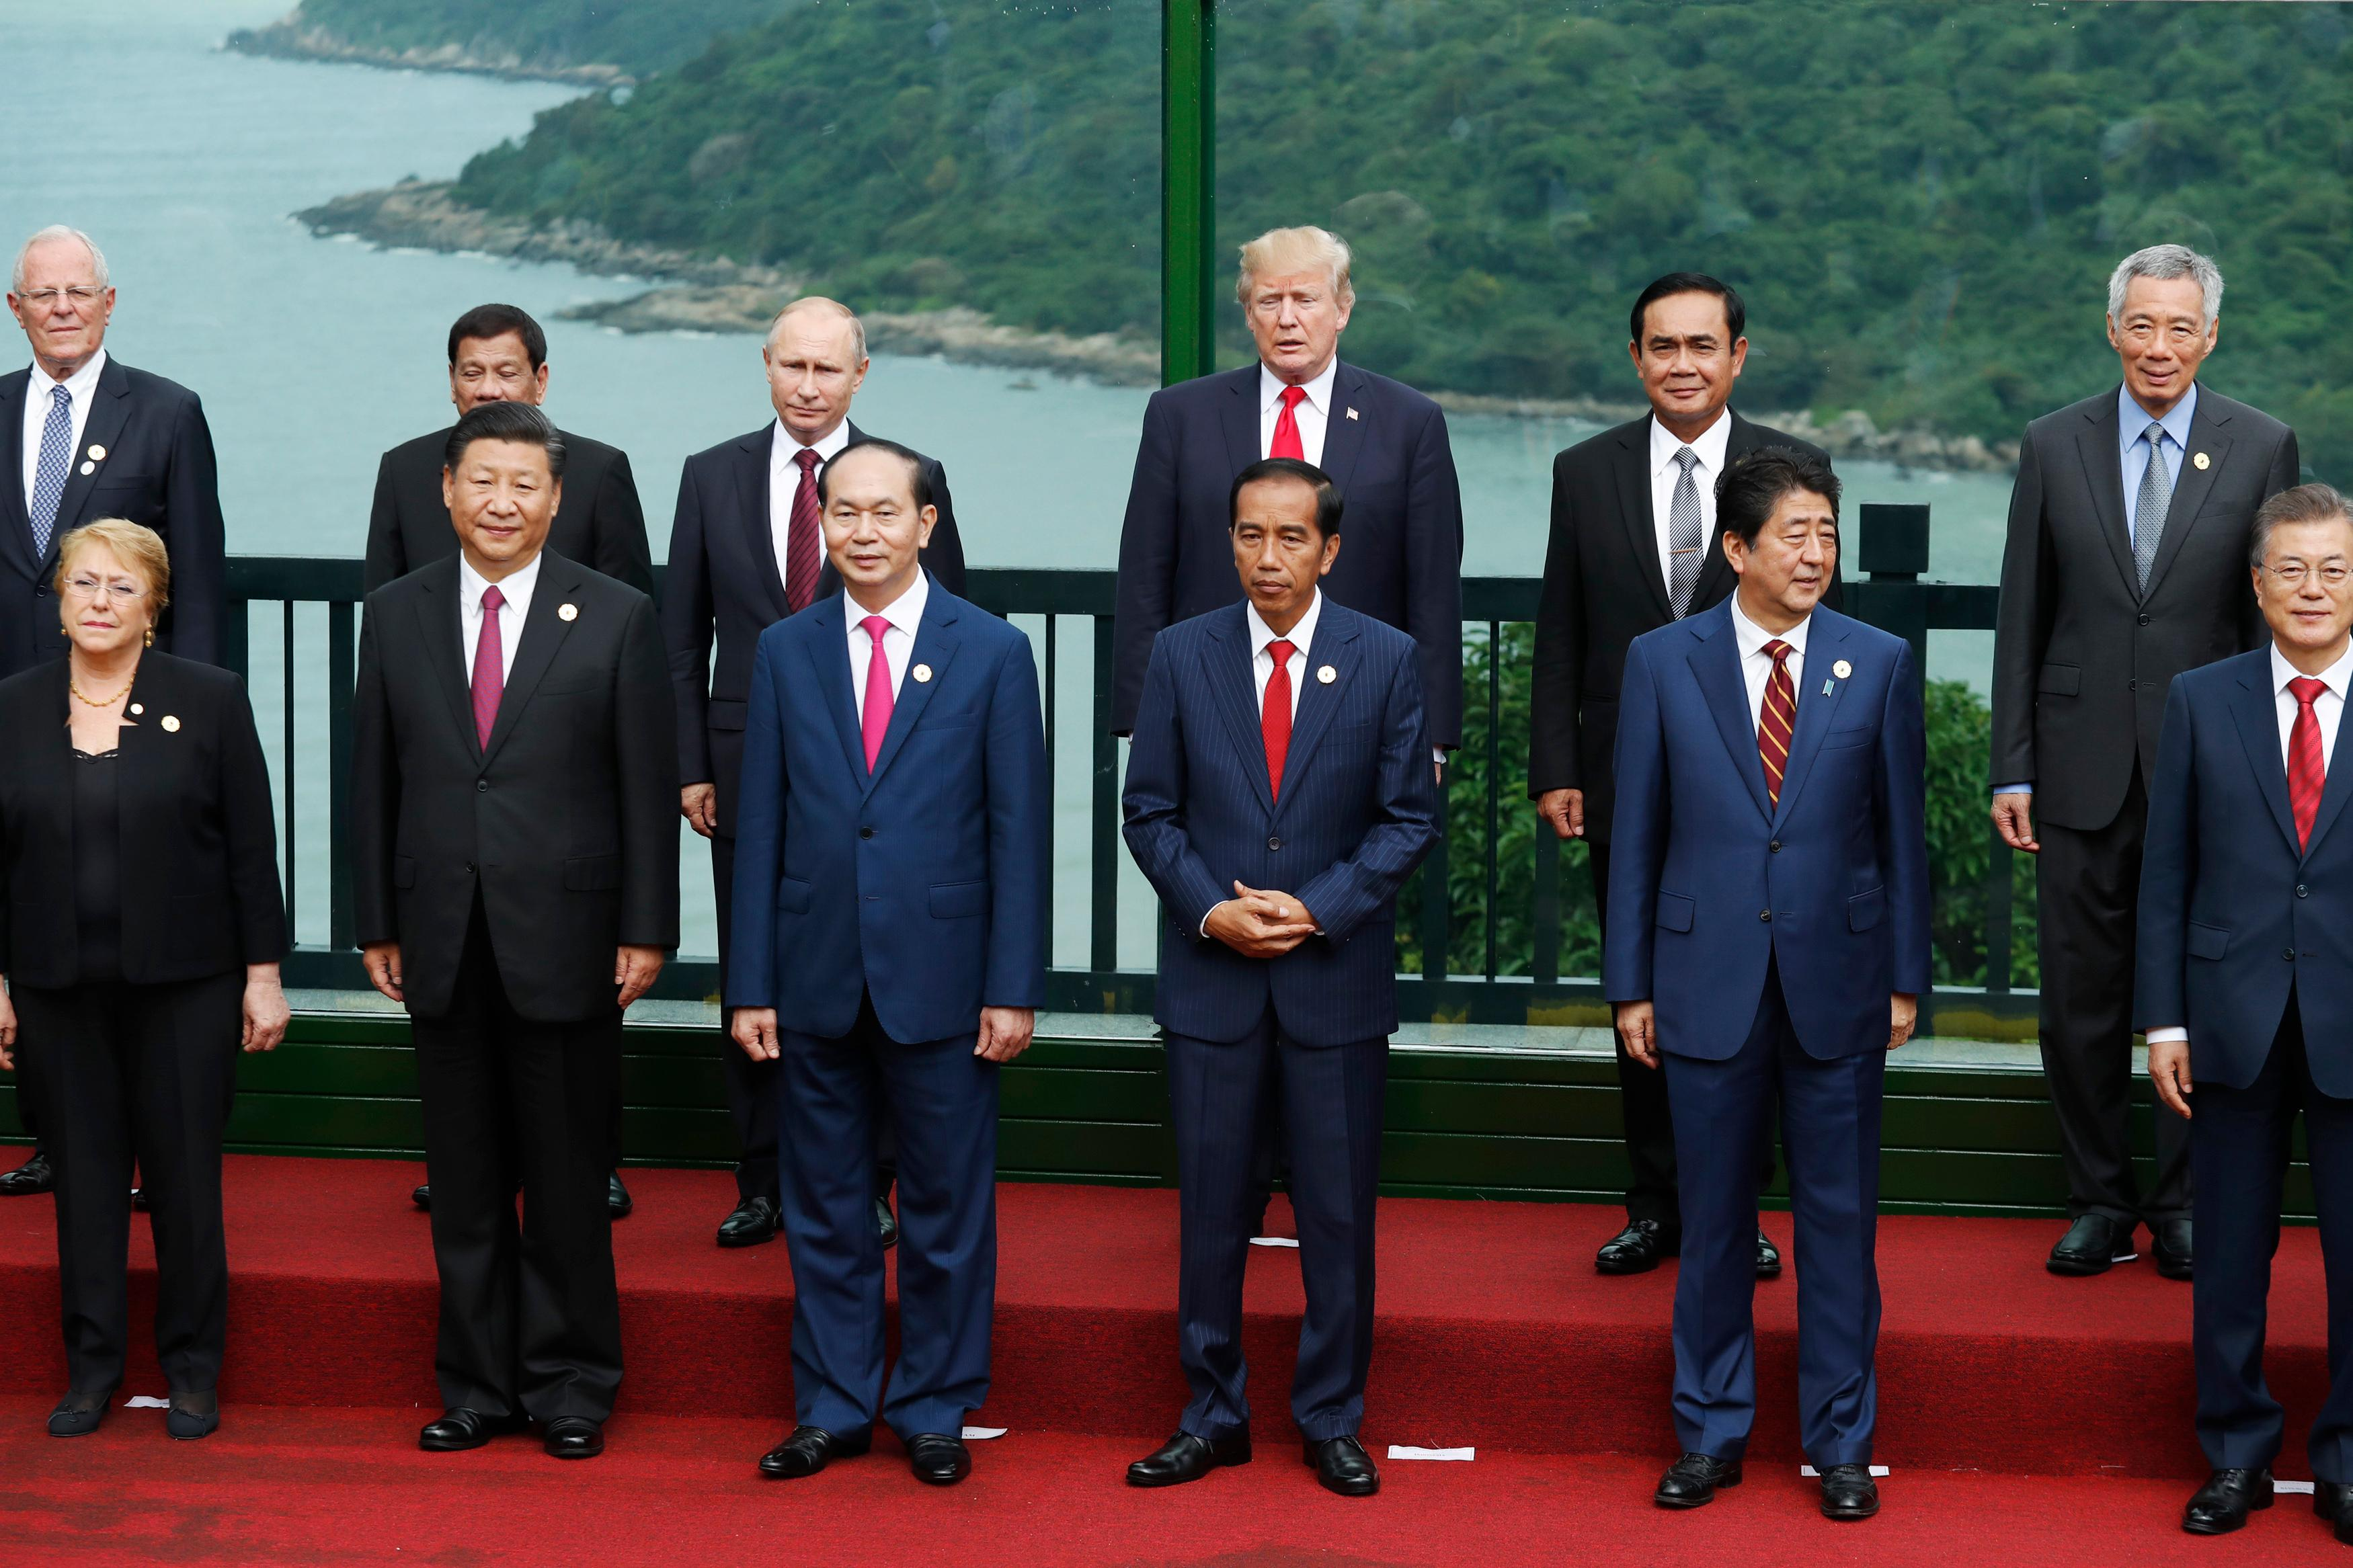 Leaders pose during the family photo session at the APEC Summit in Danang, Vietnam Saturday, Nov. 11, 2017. {&amp;nbsp;}(Jorge Silva/Pool Photo via AP)<p></p>